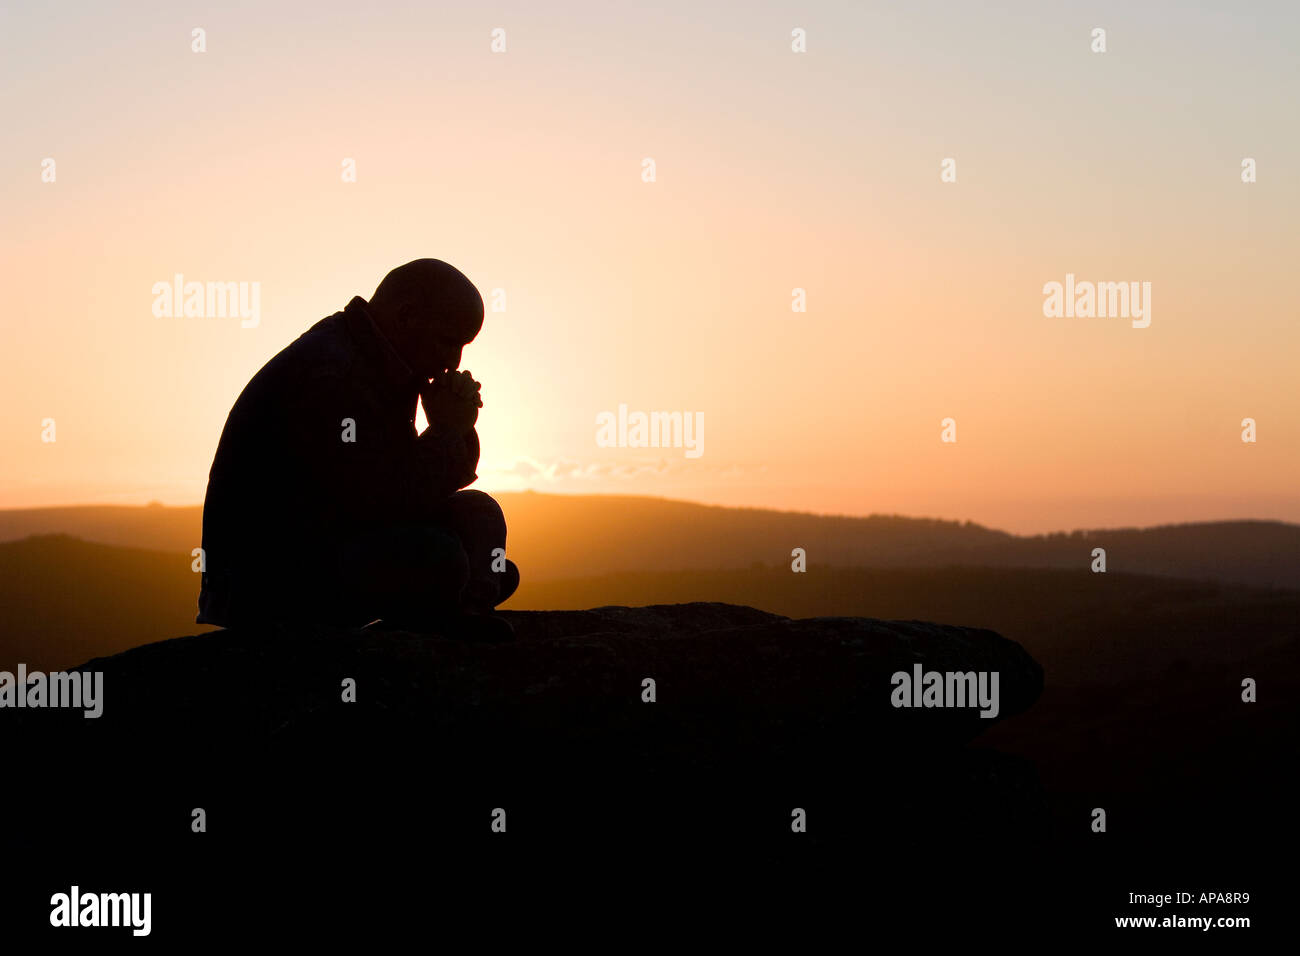 Silhouette profile of a man sat thinking on a hill at sunrise - Stock Image